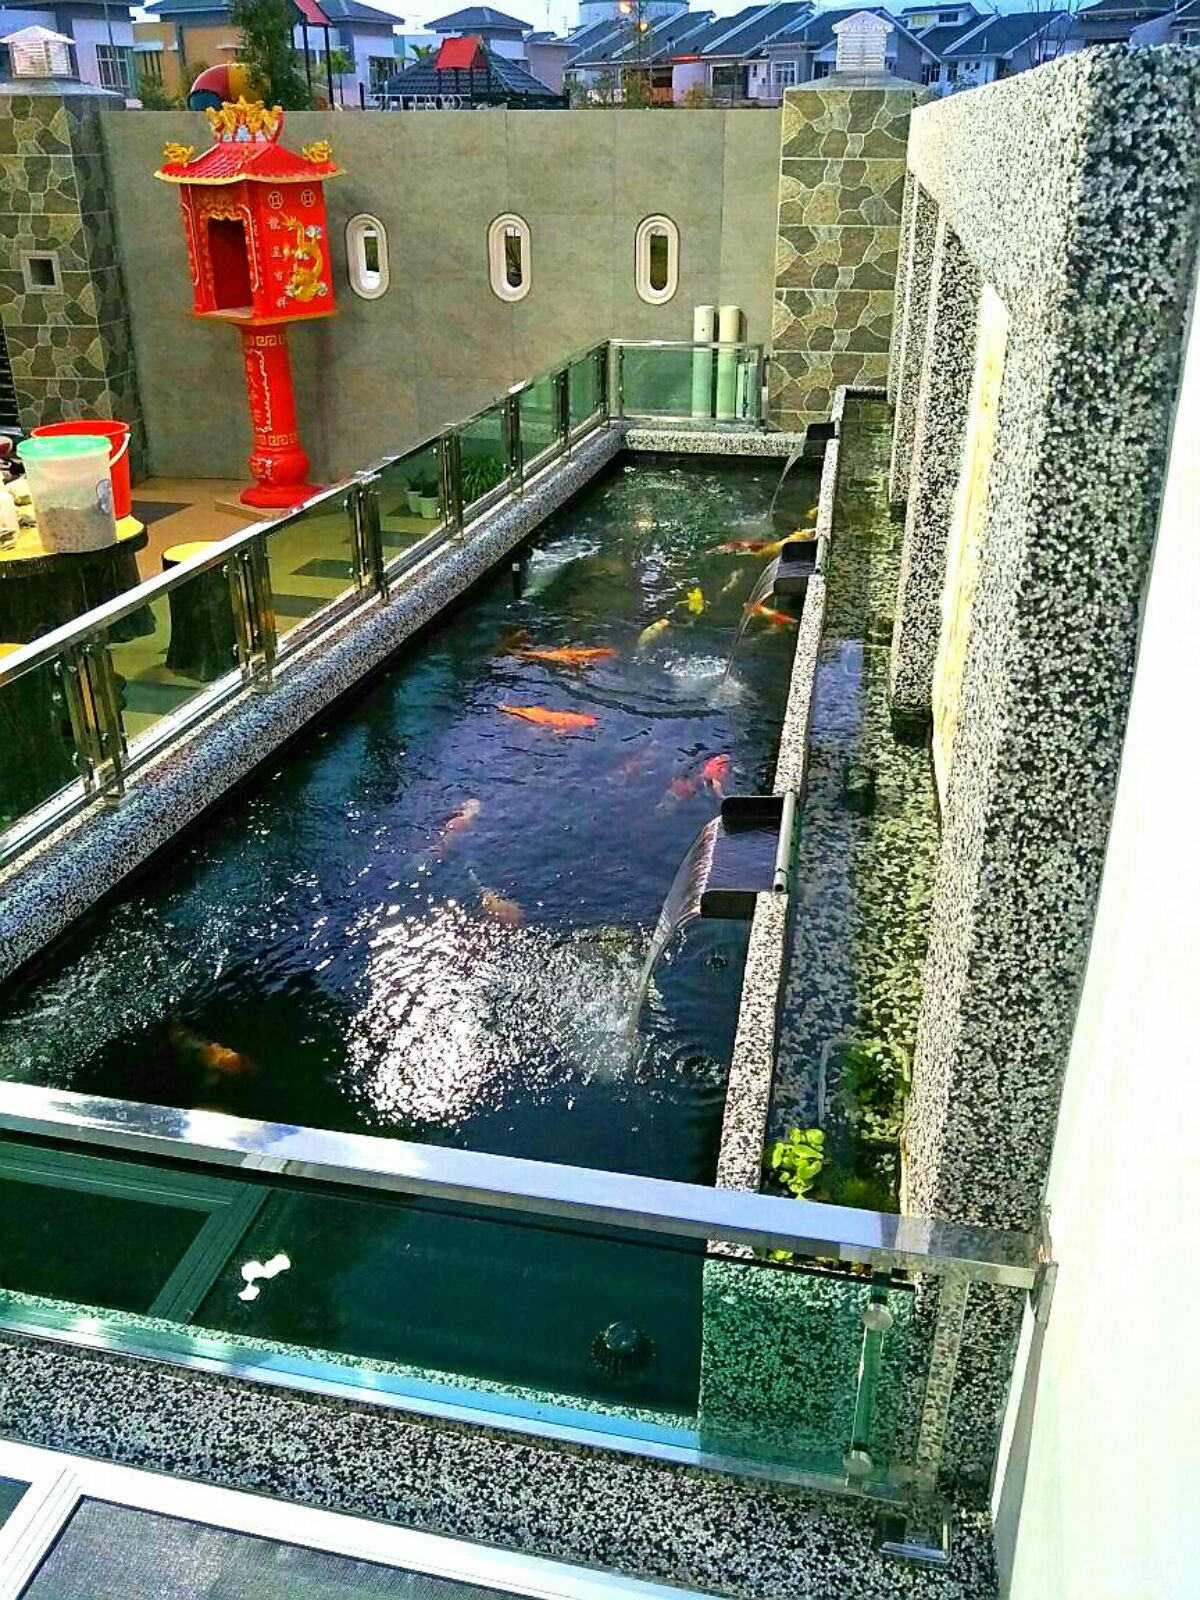 Simple and nice koi pond with clear and clean water koi for Koi pond johor bahru